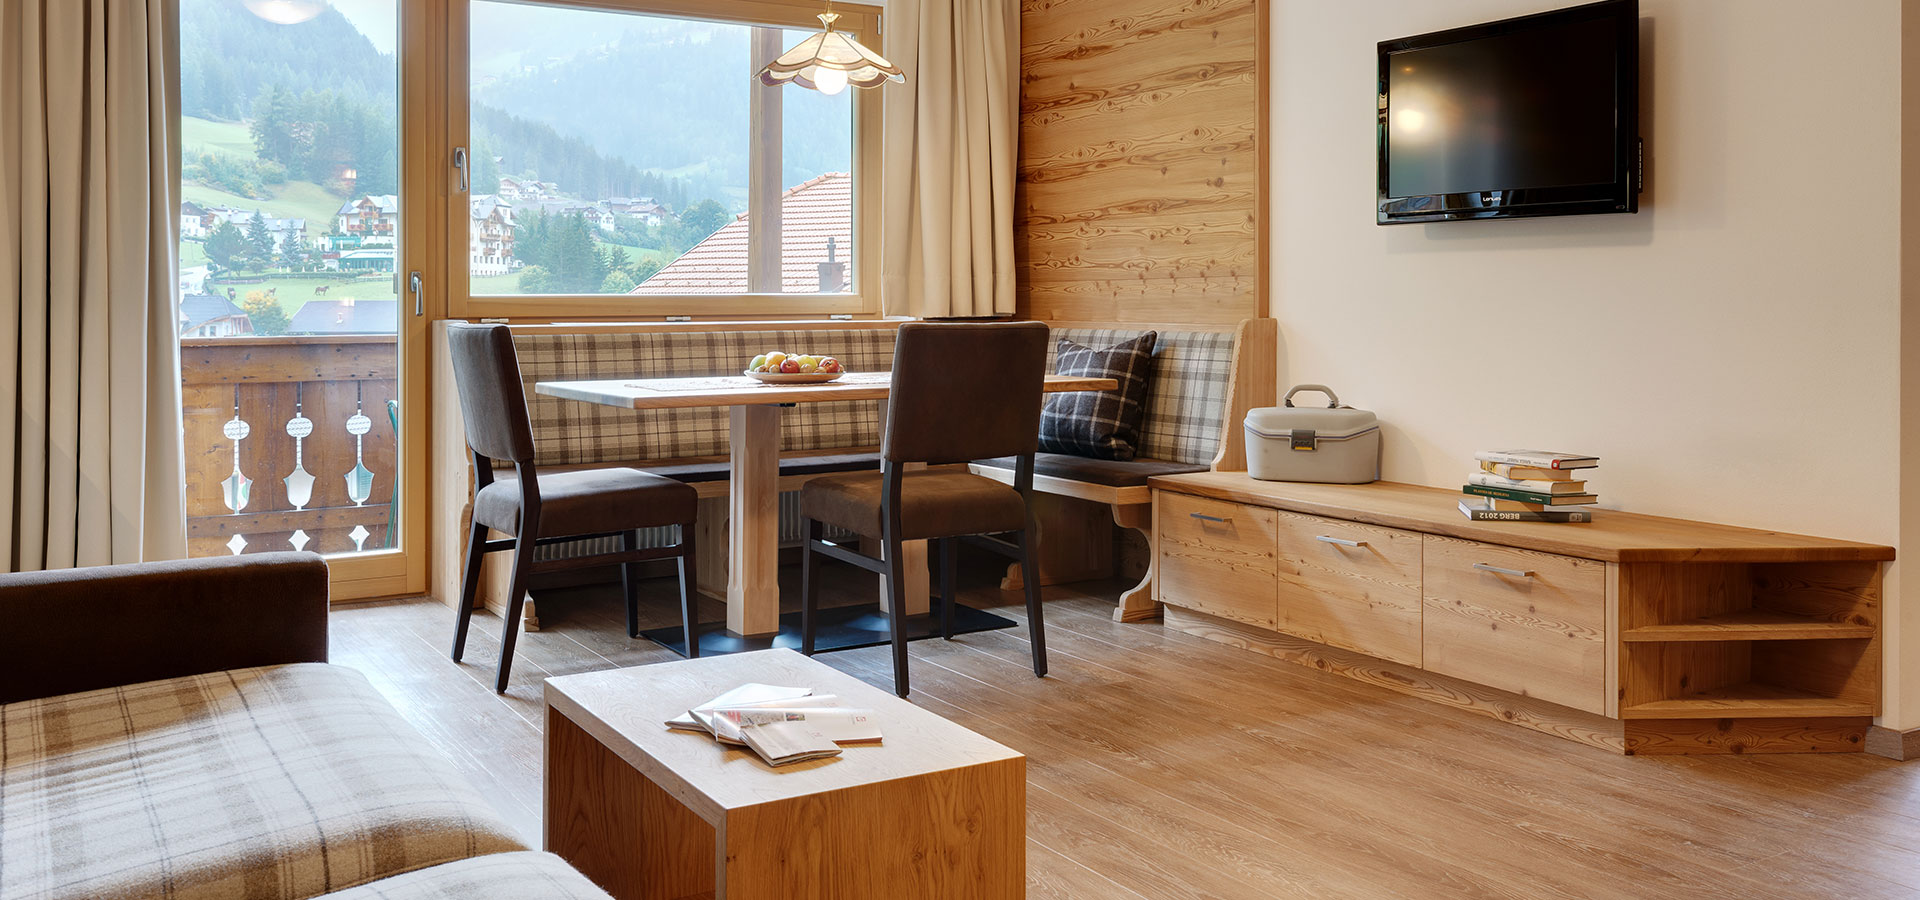 Holiday apartment in Ortisei Val Gardena